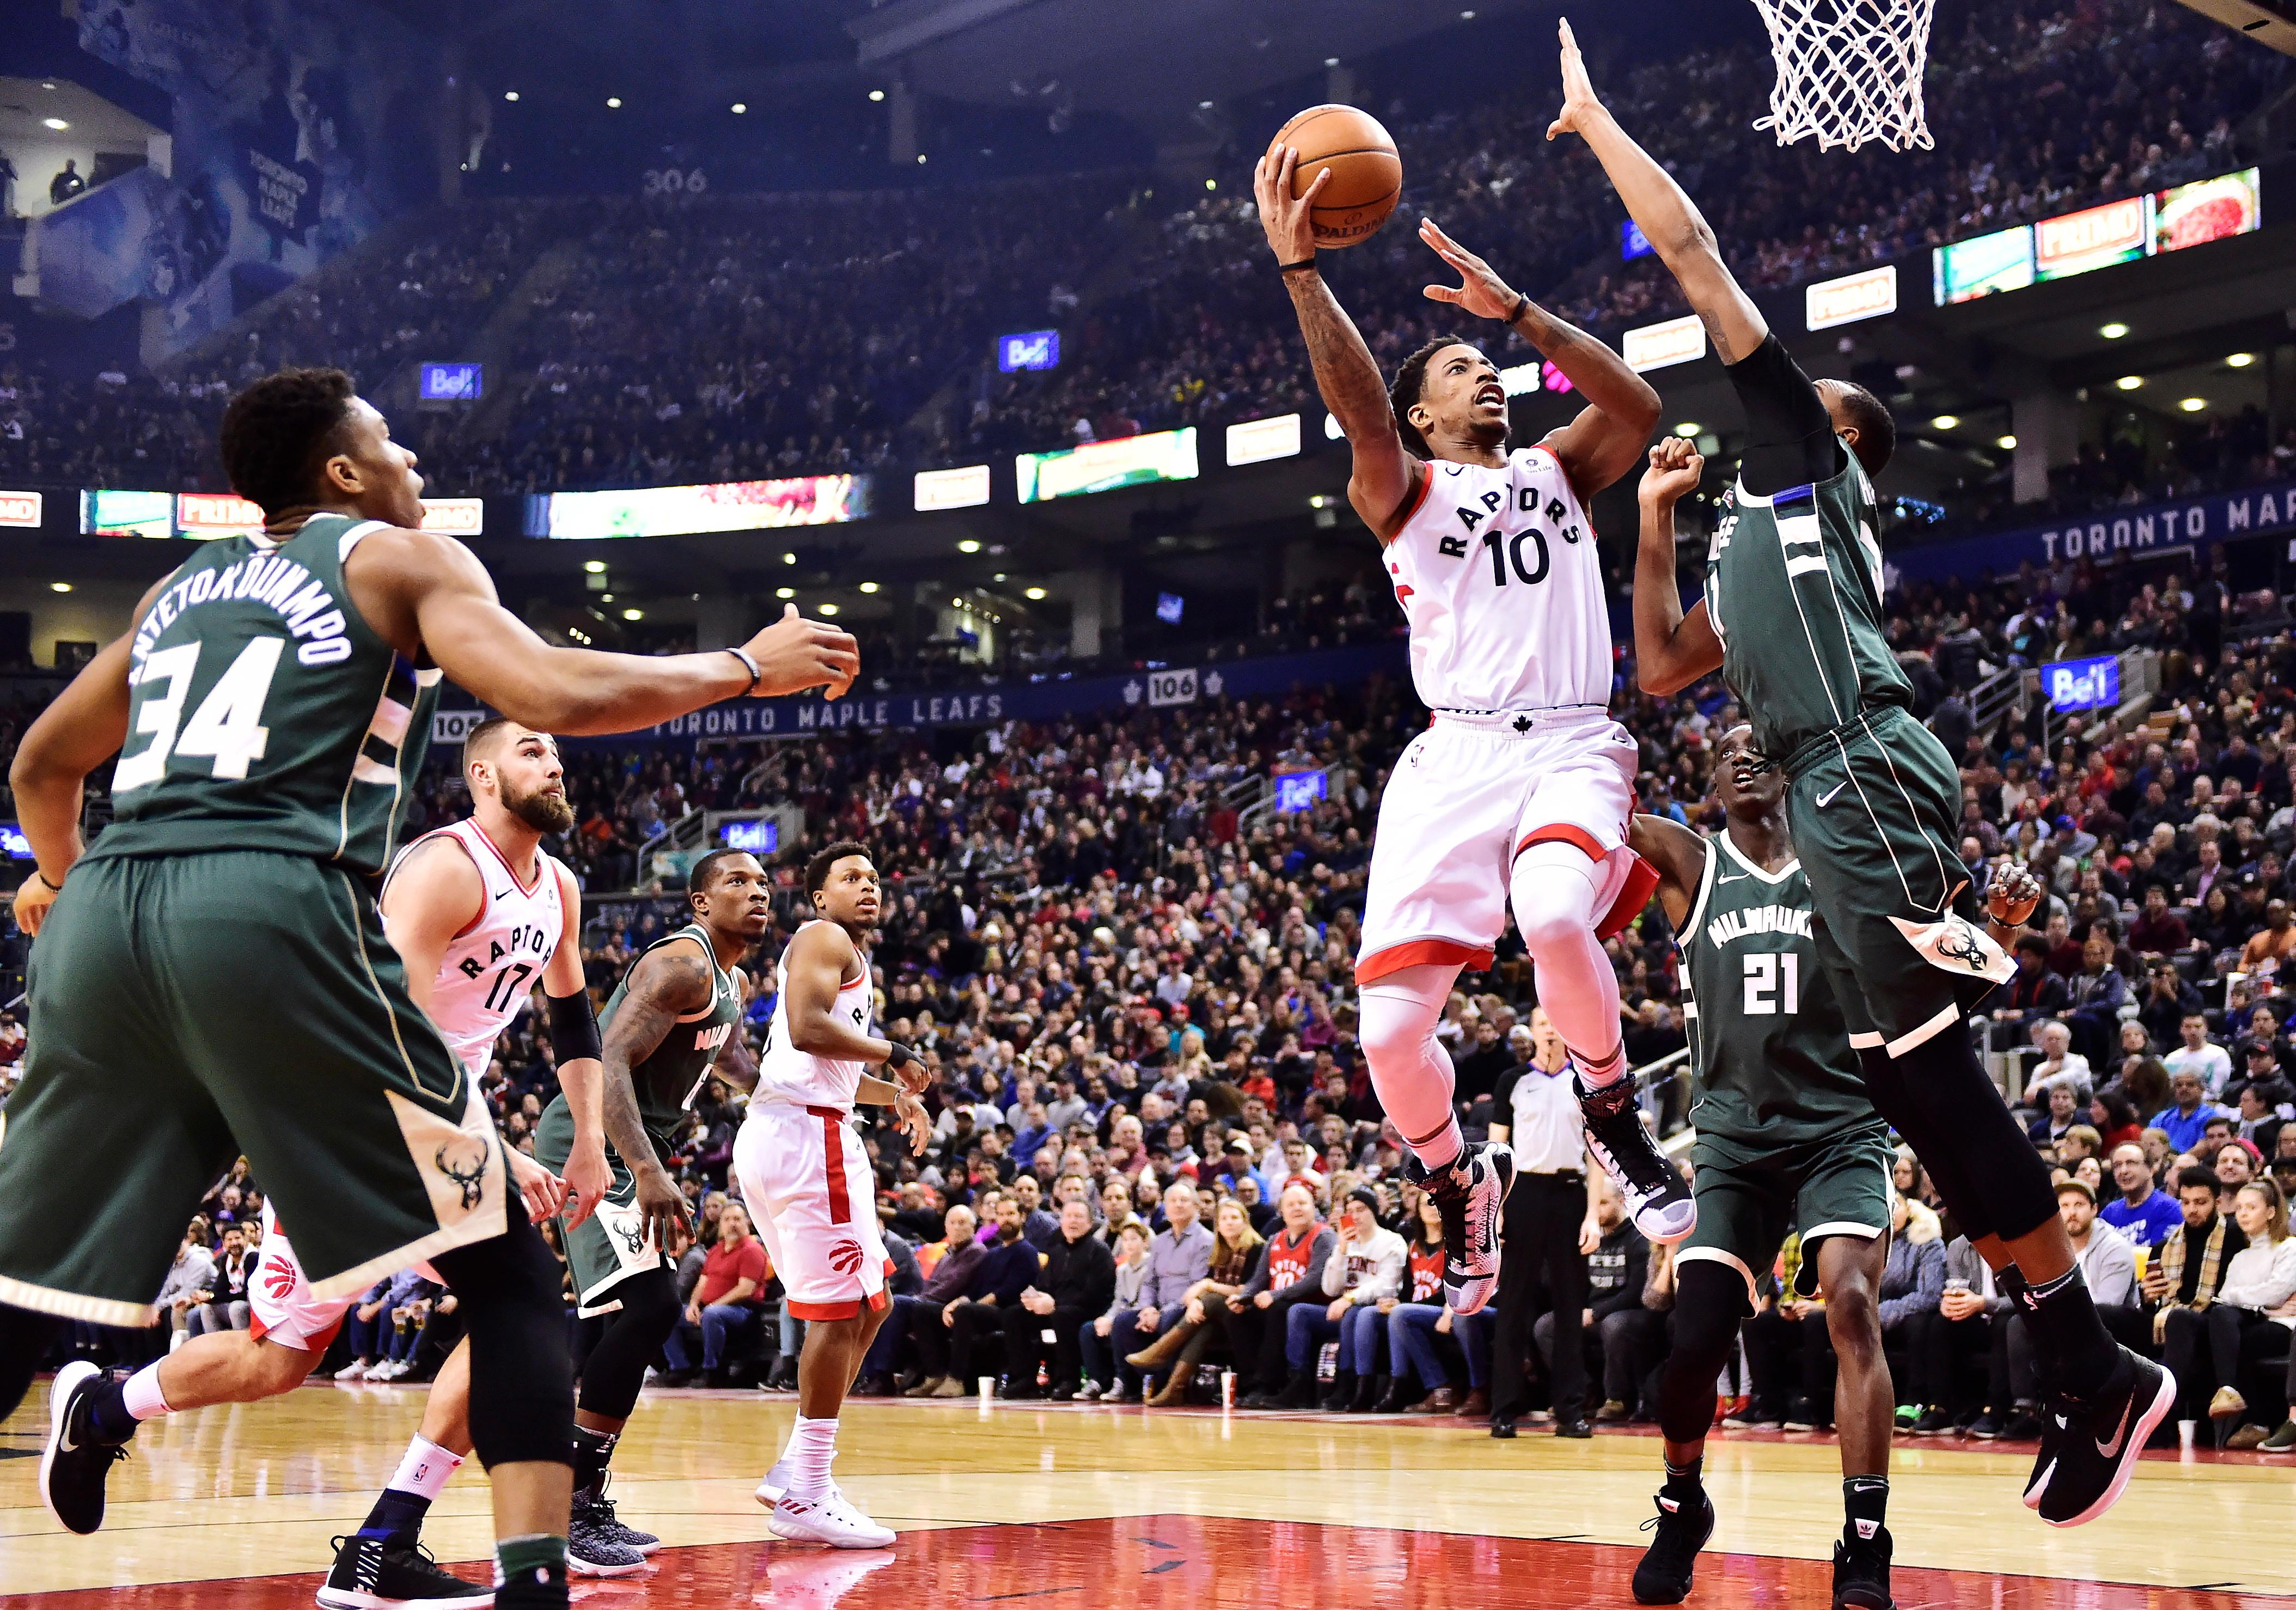 Toronto Raptors guard DeMar DeRozan (10) shoots over Milwaukee Bucks forward John Henson (31) during first half action in Toronto on Monday, Jan. 1, 2018. (Frank Gunn/The Canadian Press via AP)